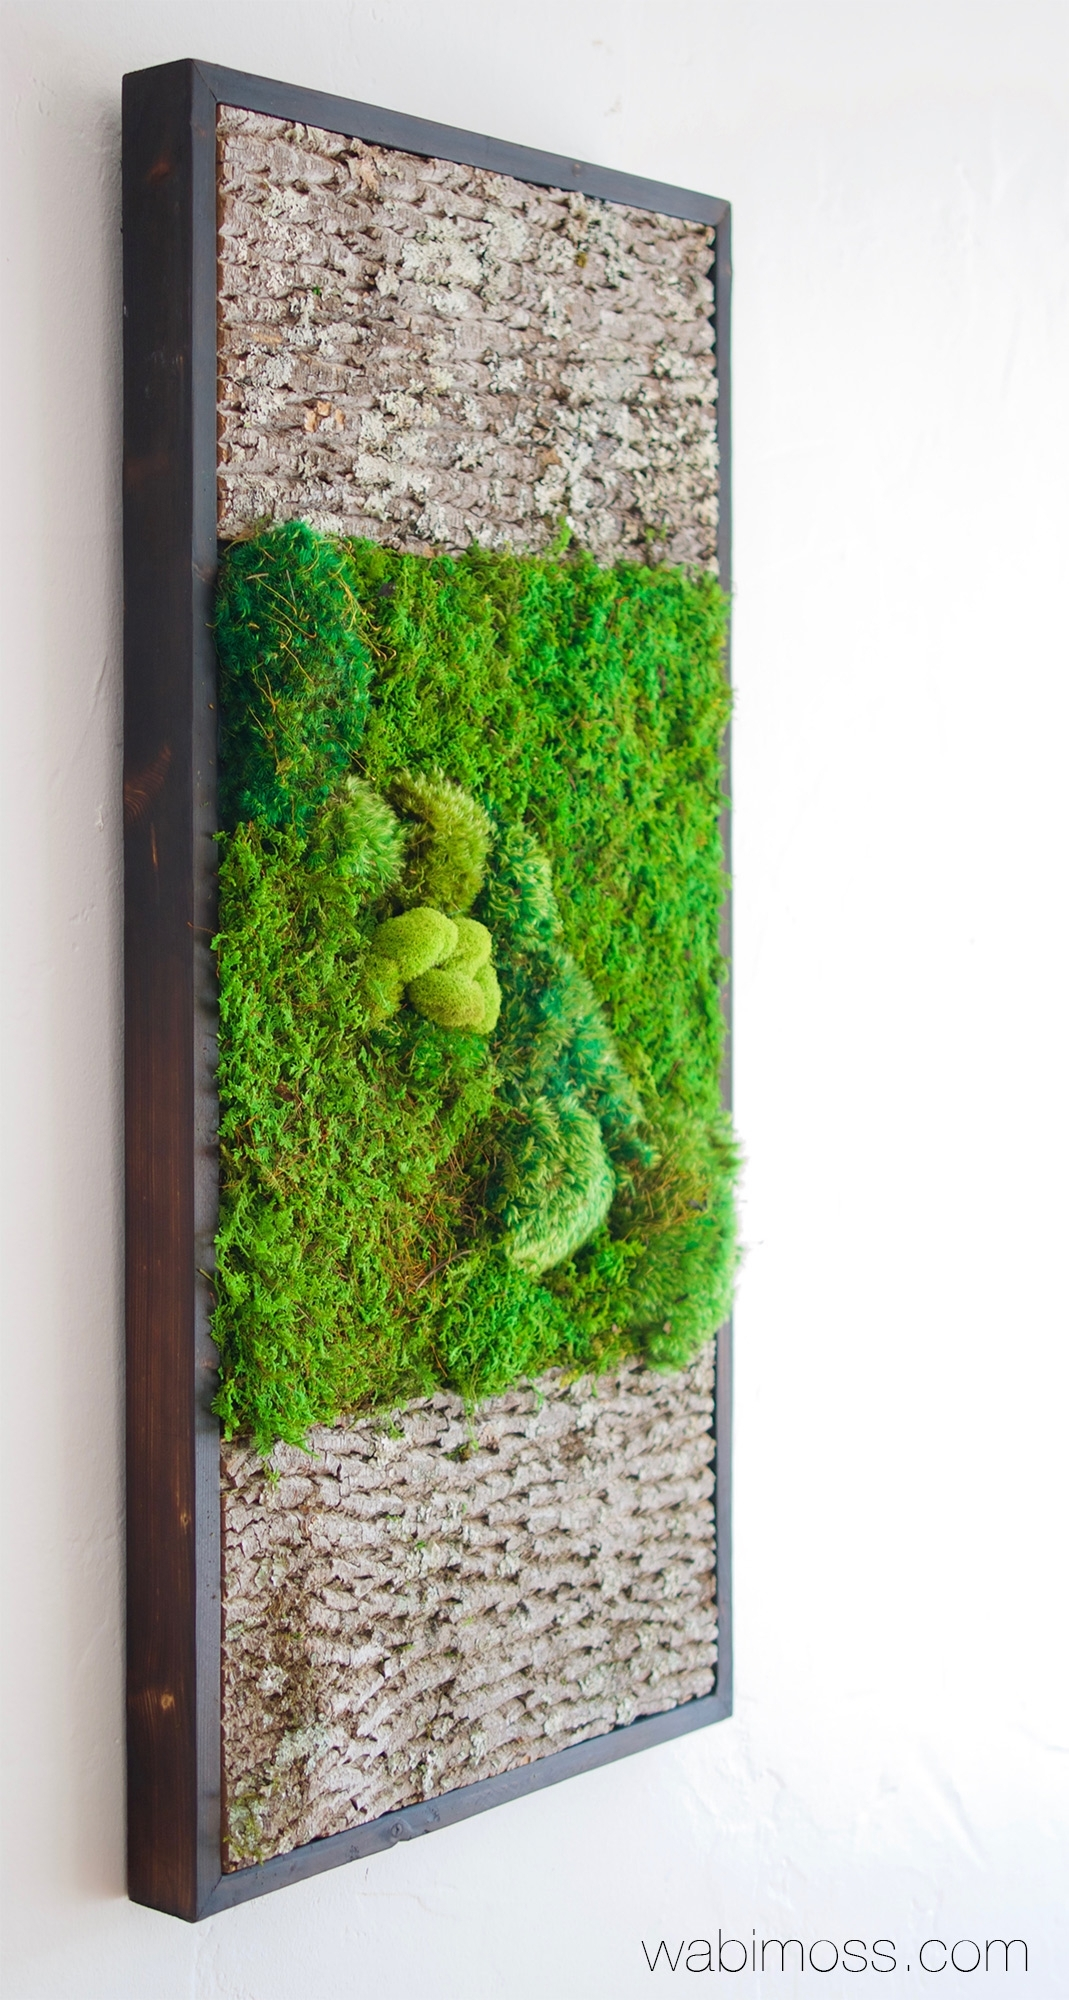 Bark And Moss Wall Art 36X18 – Wabimoss Intended For 2018 Moss Wall Art (View 5 of 20)